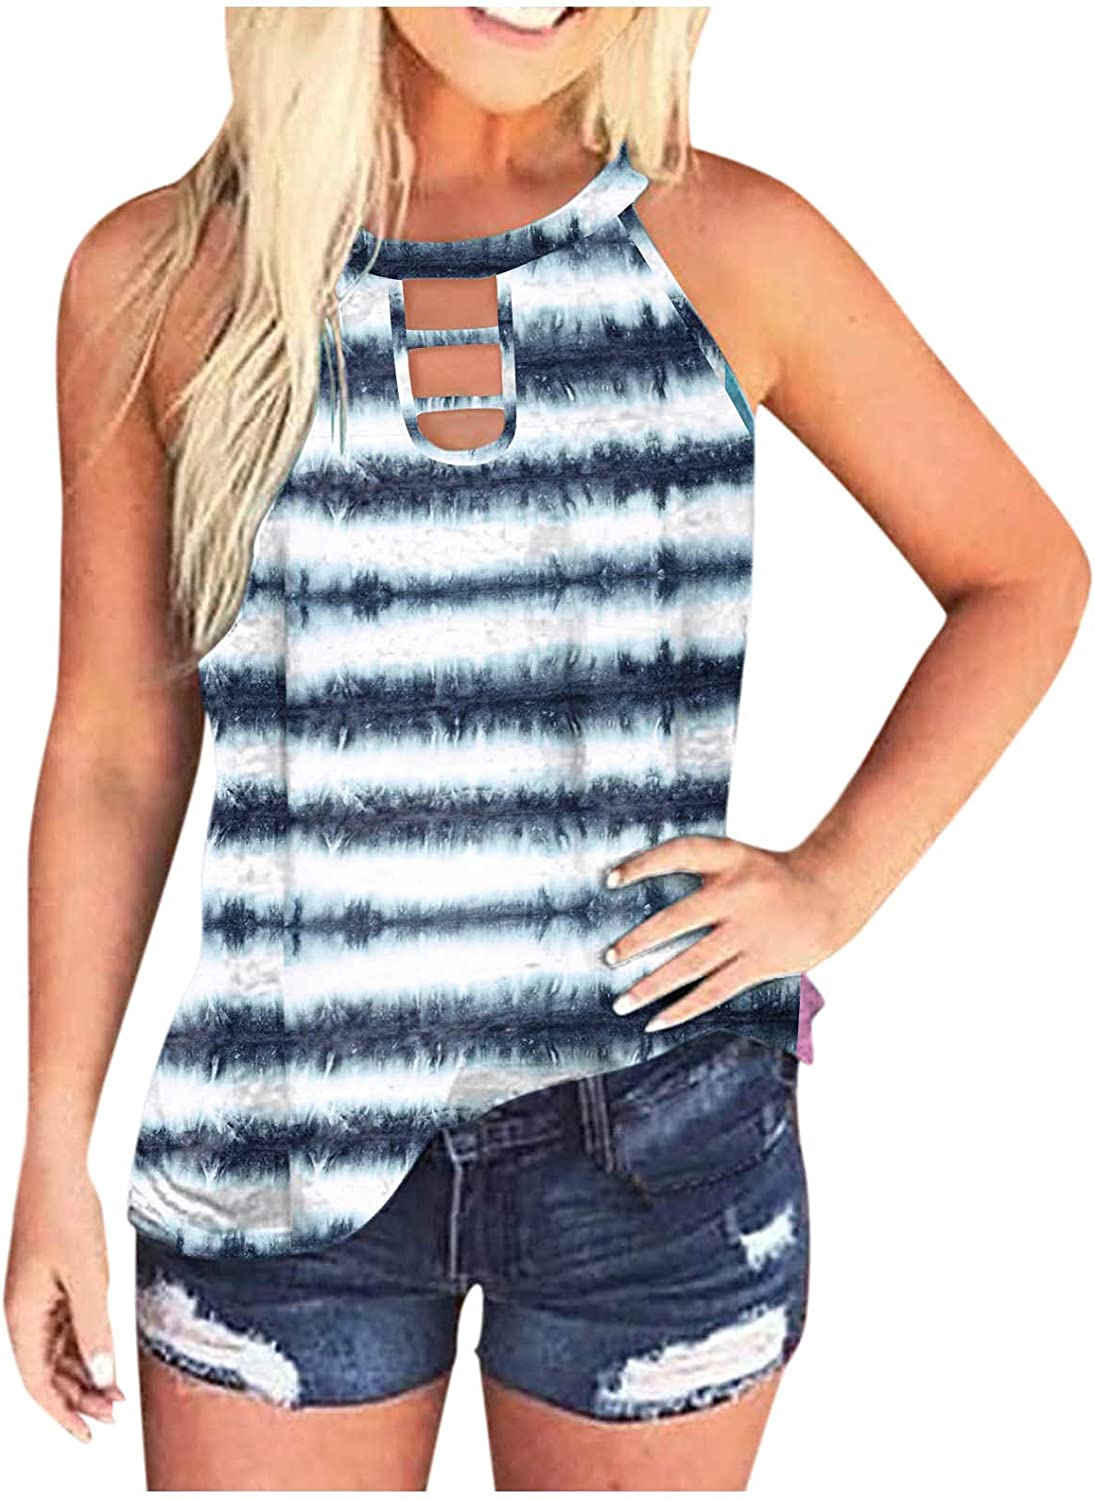 AODONG Womens Tank Tops,Womens Summer Casual Loose Fit Sleeveless Workout Blouses Tops Tank Shirts Tunics Vest